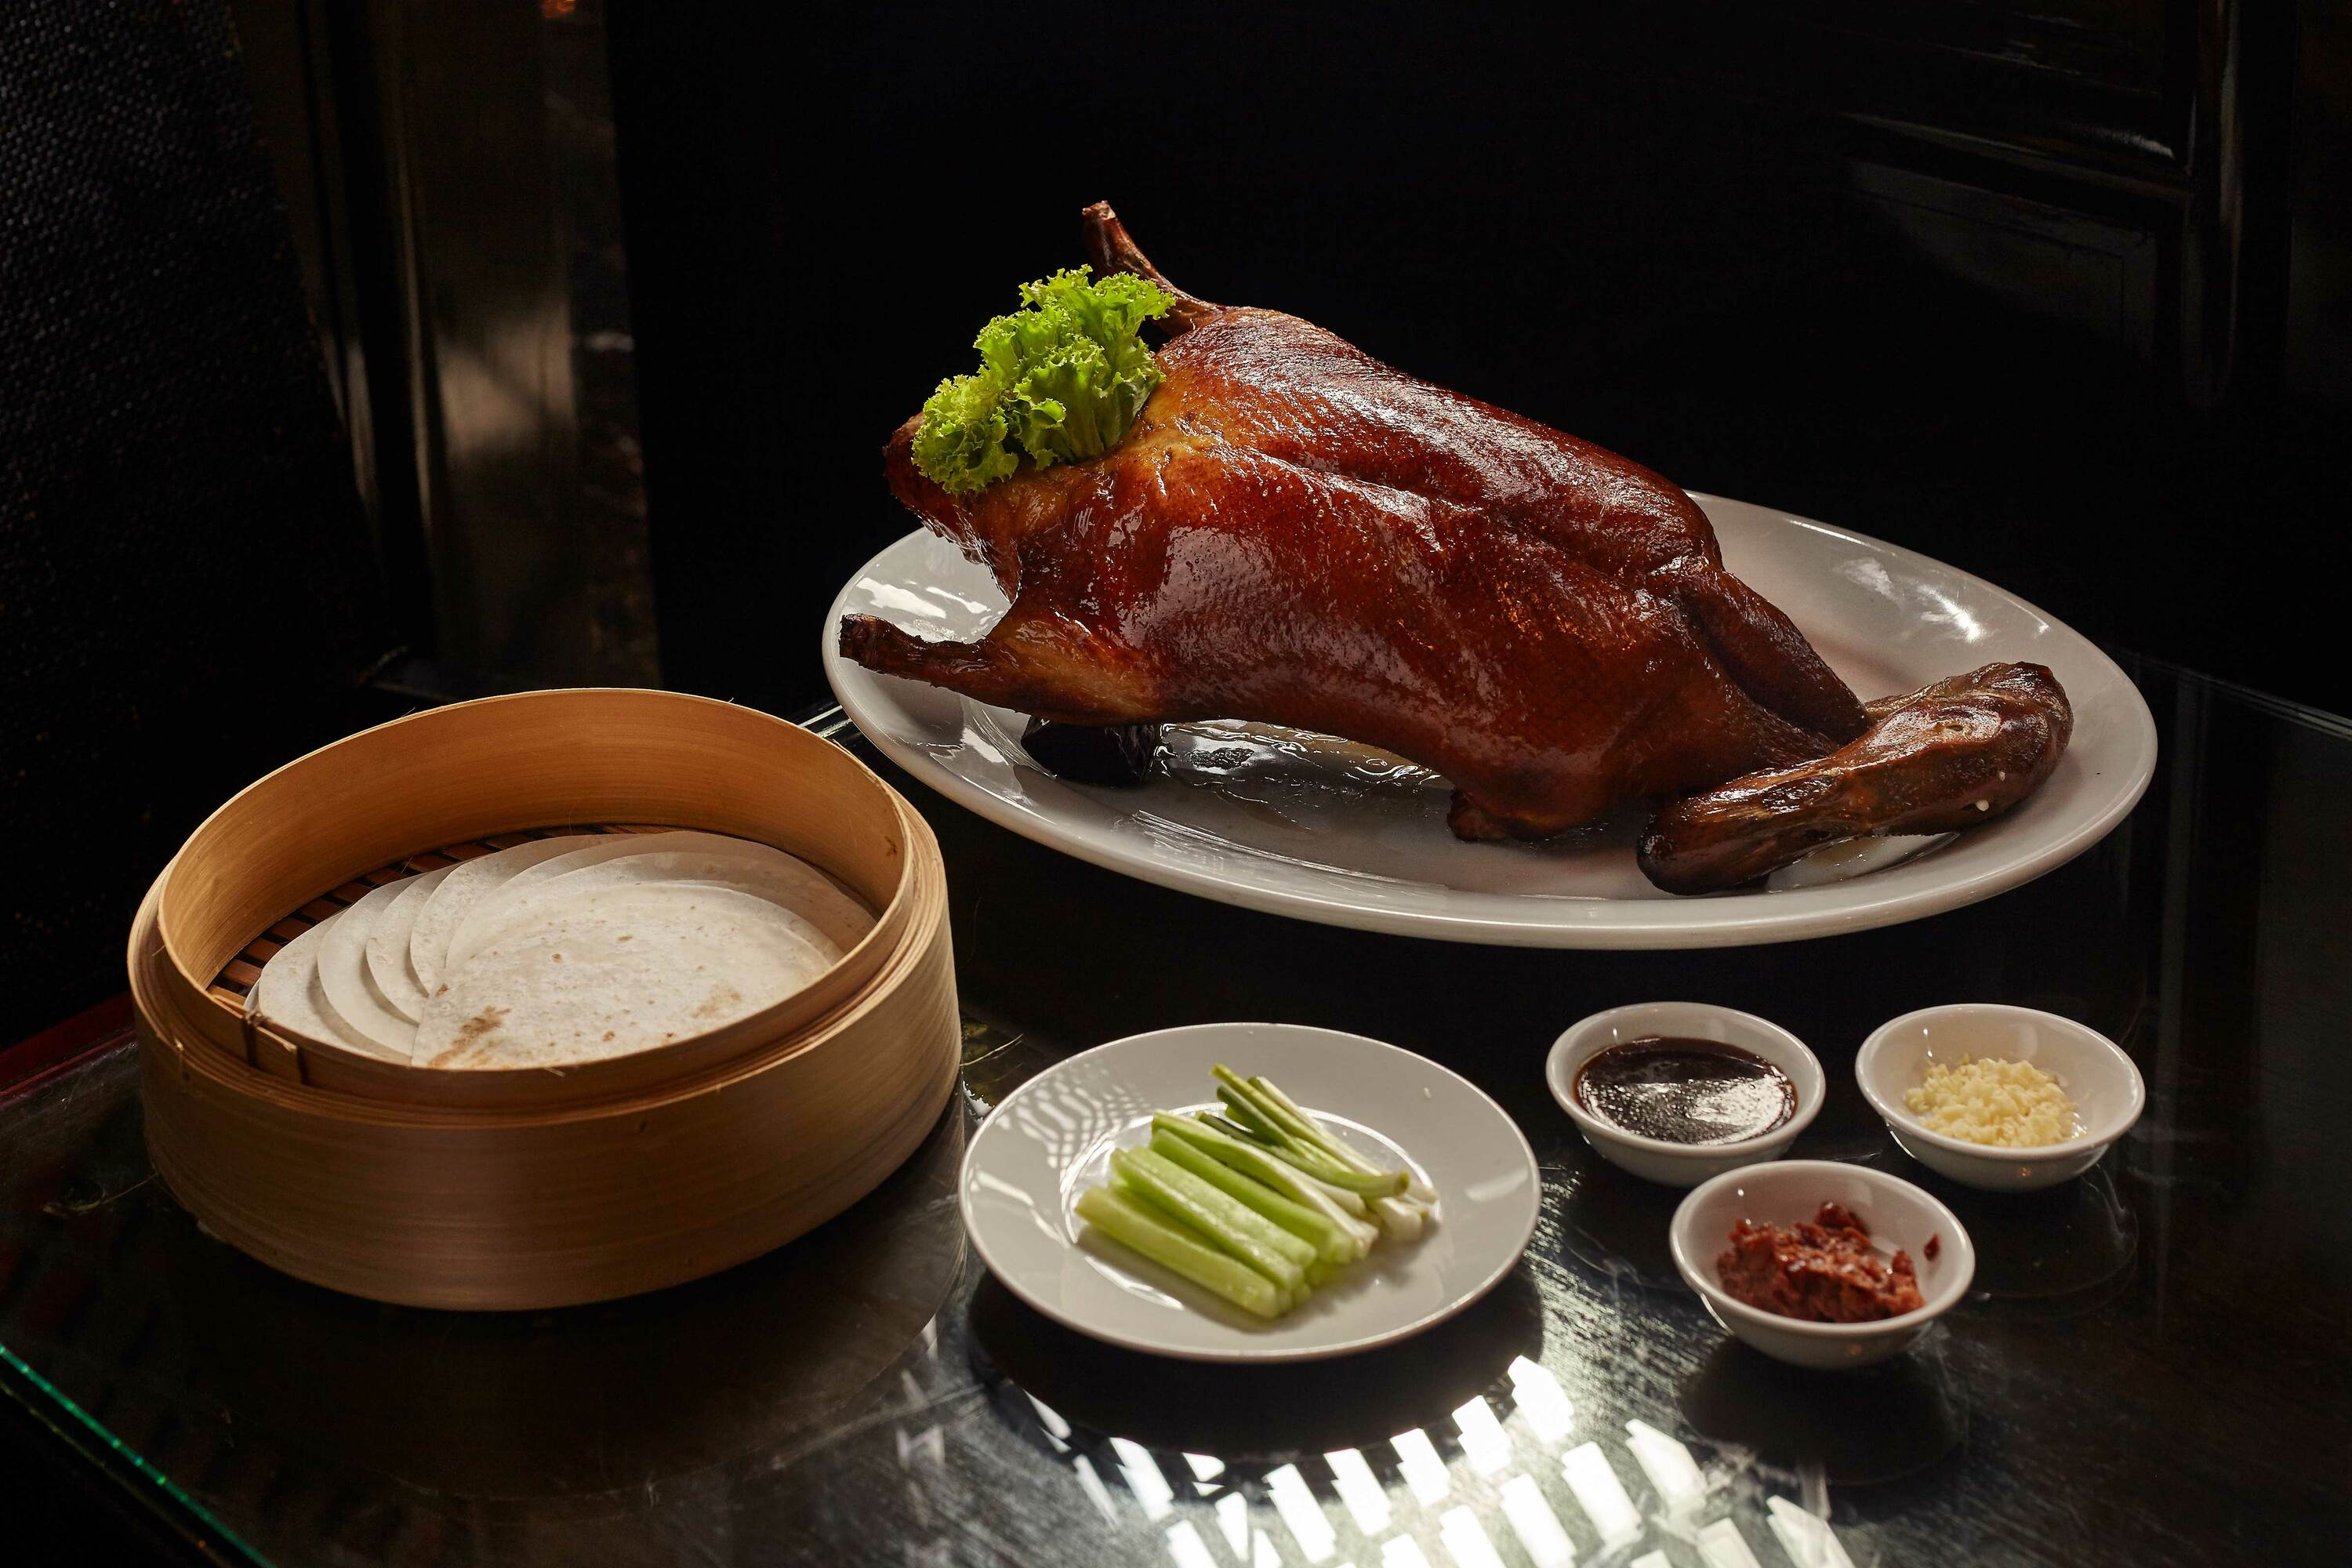 Peking duck at Fei Ya Renaissance